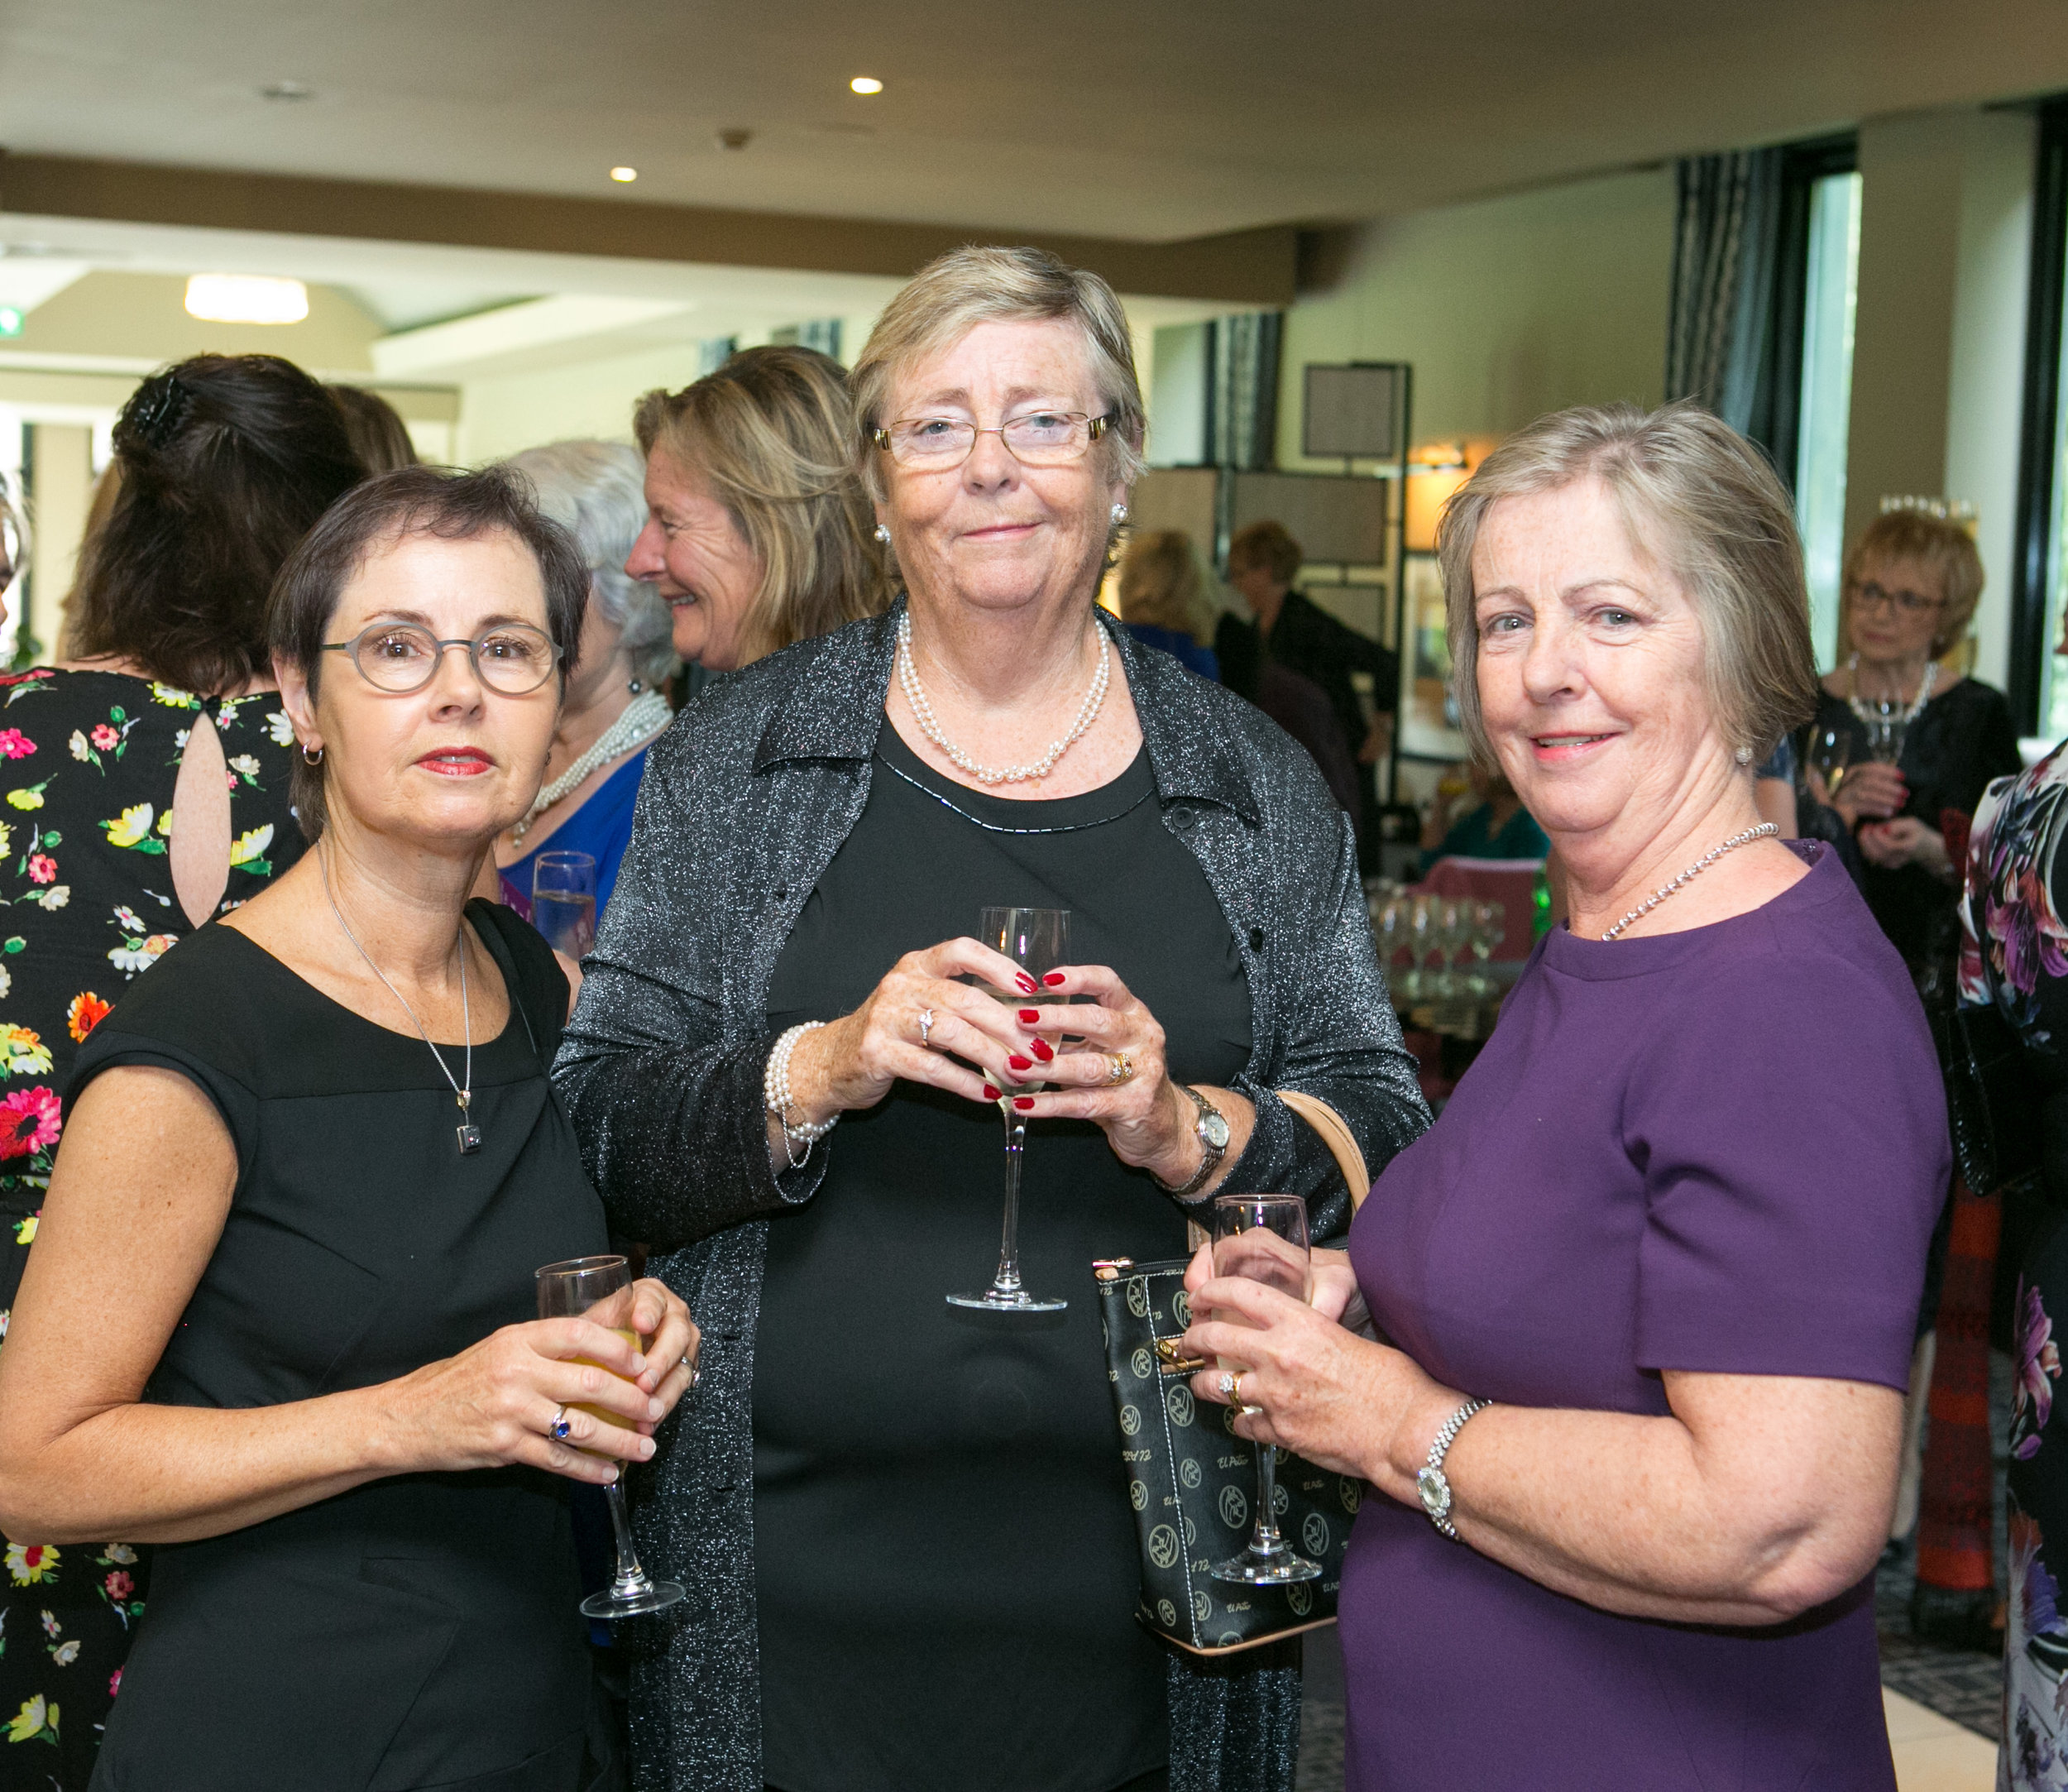 Katie O'Donovan, Douglas, Anne Murphy and Marie Fitzgerald, Bishopstown attending the Annual Aer Lingus Autumn Lunch in aid of Cork ARC Cancer Support House.